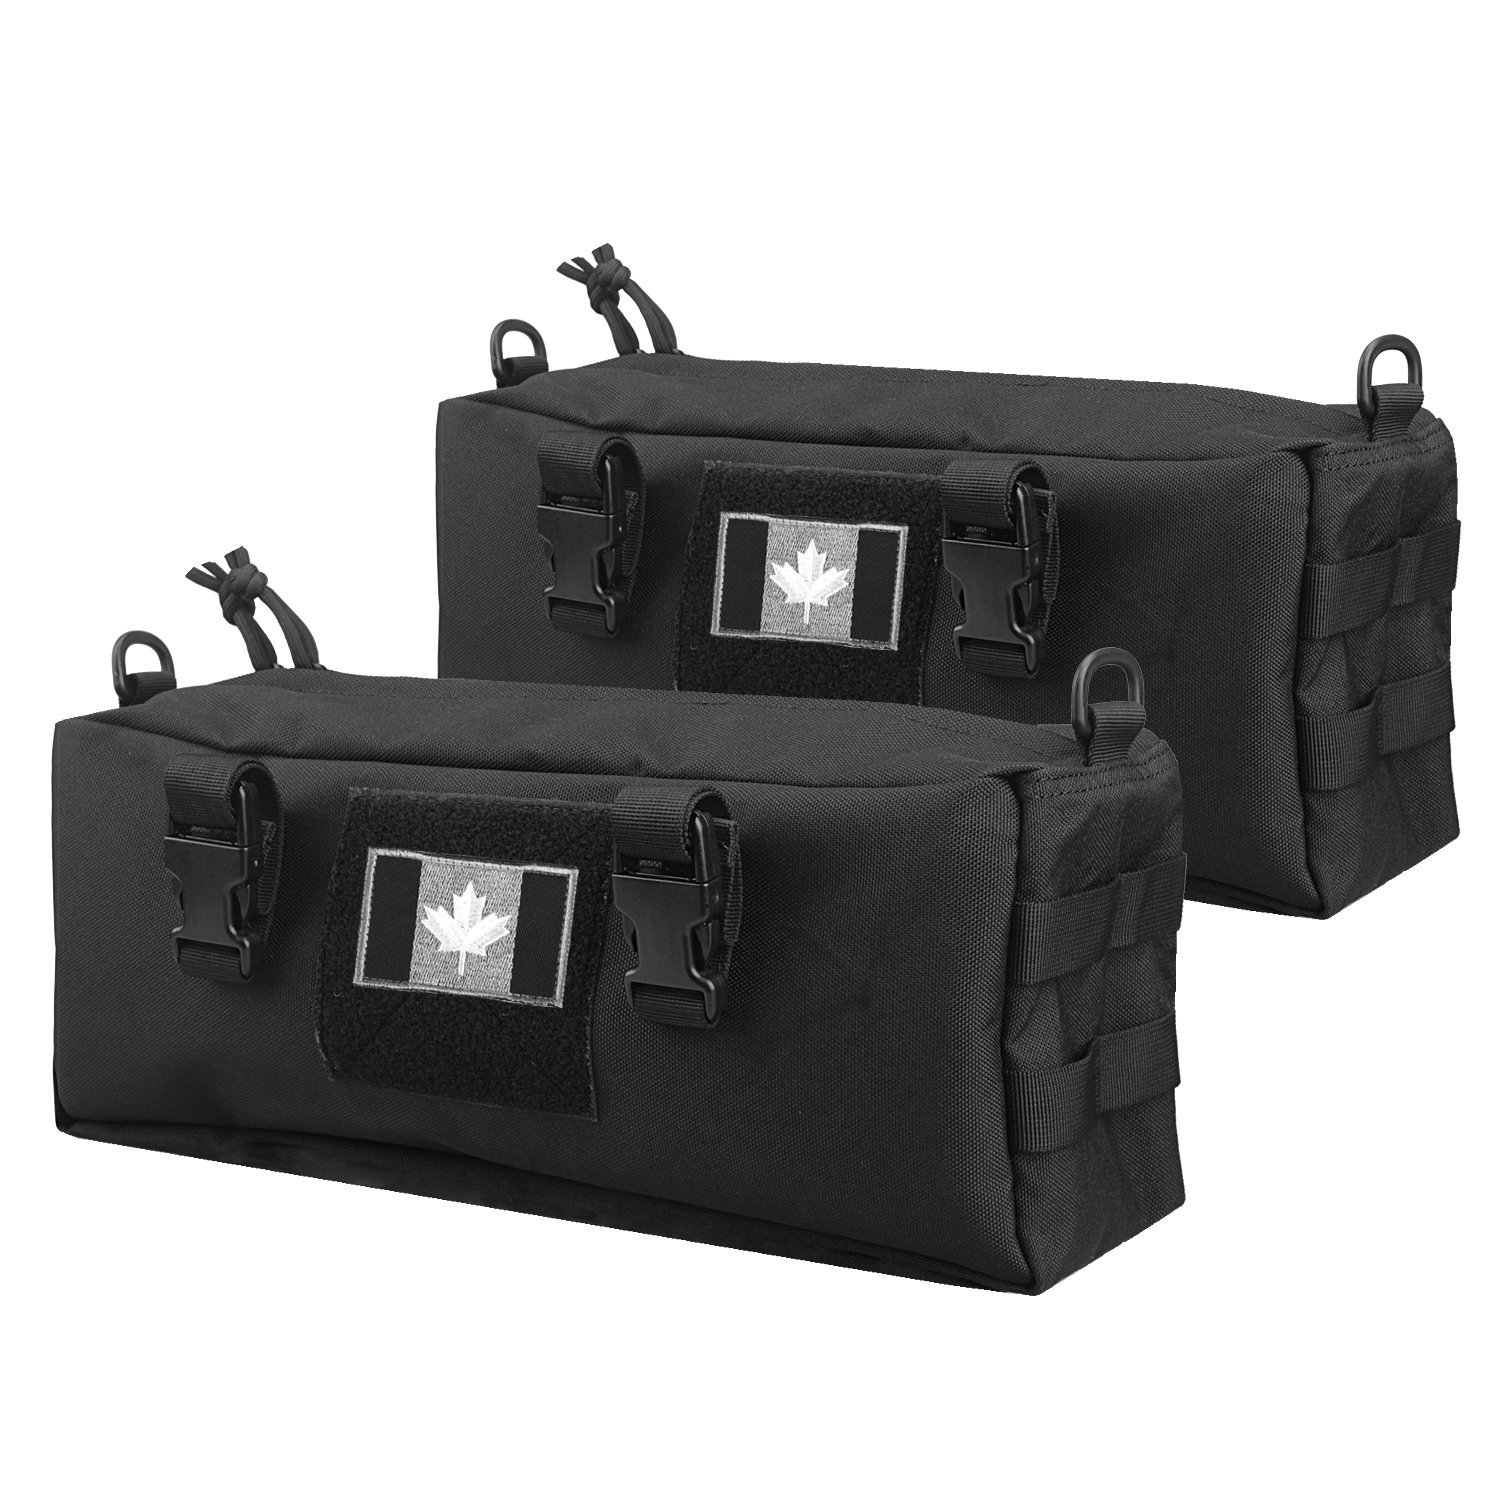 AMYIPO Tactical Pouch Multi-Purpose Large Capacity Increment Pouch Short Trips Bag